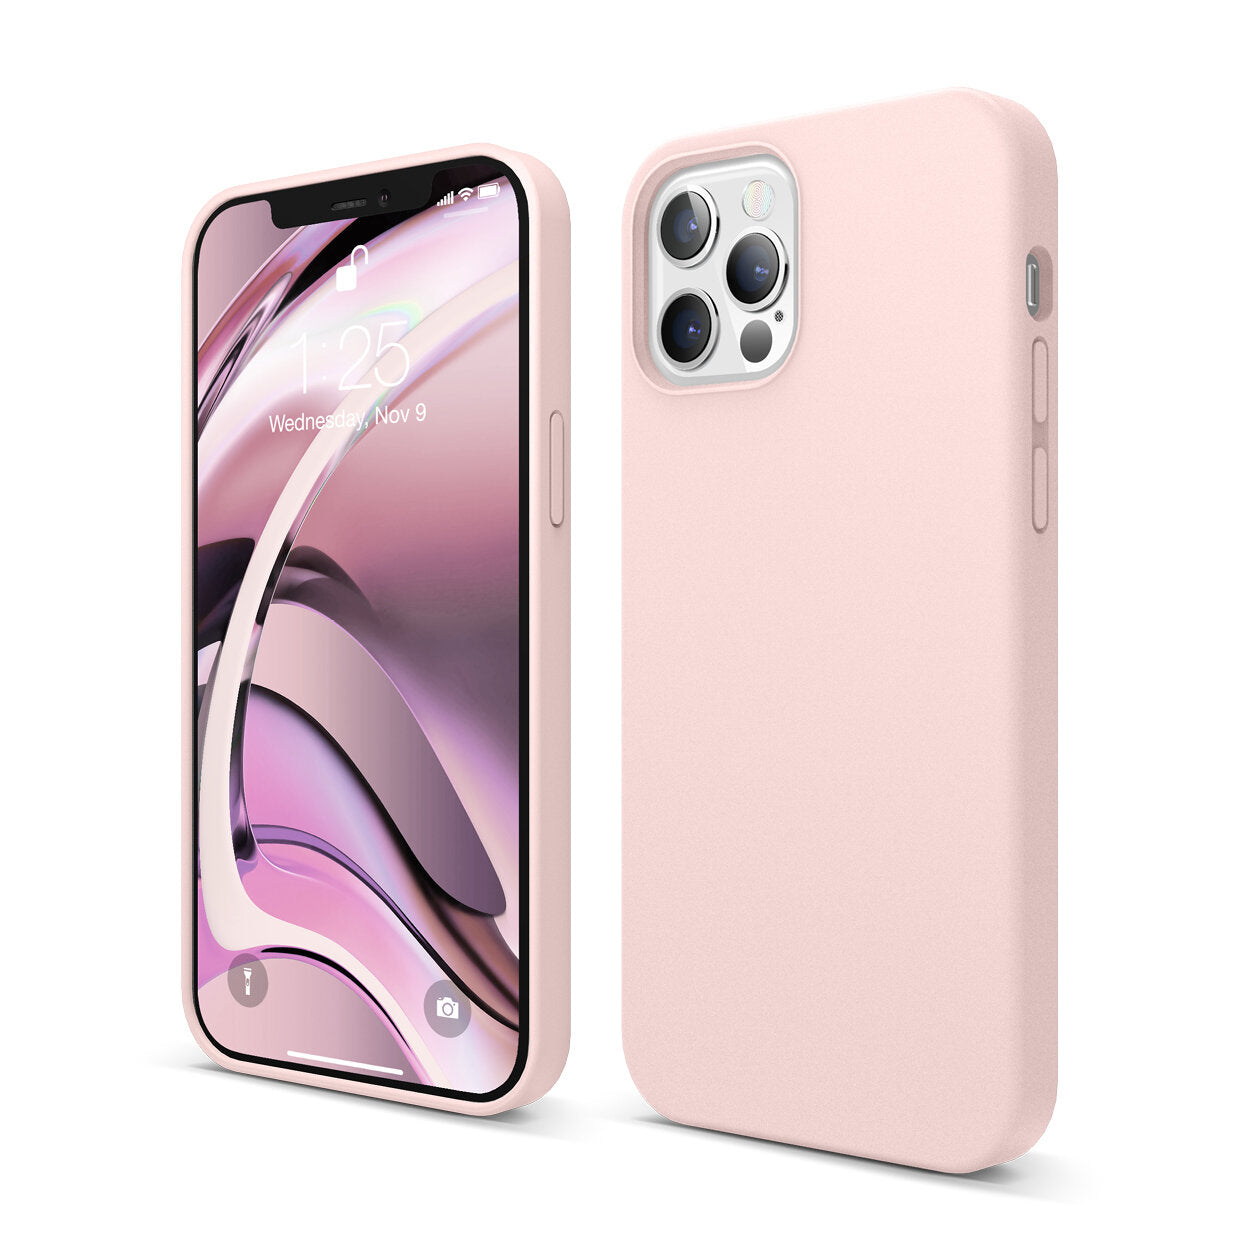 Mons Liquid Silicone Case For IPhone ( 2020 ) - Lovely Pink